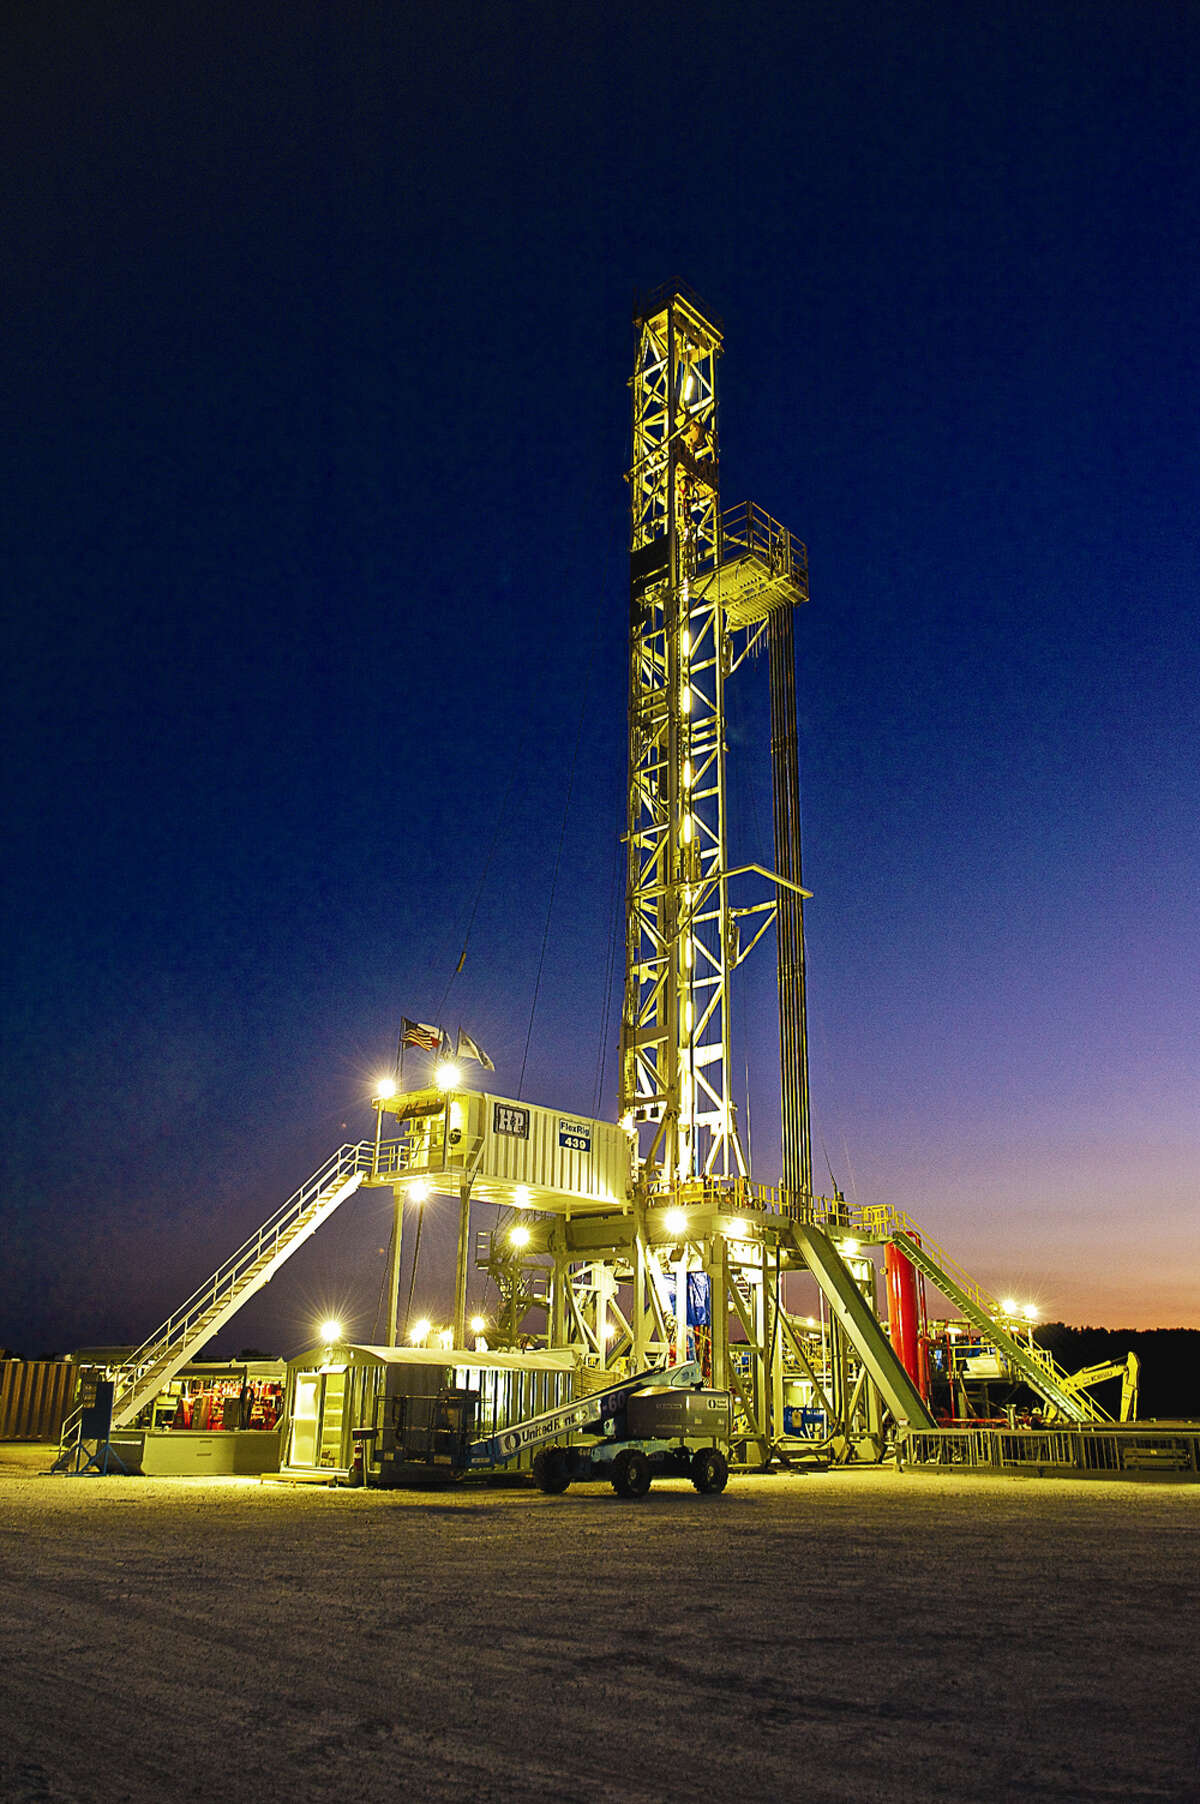 A drilling rig works on a ConocoPhillips site in the Eagle Ford Shale. On Thursday, ConocoPhillips had said for months that keeping its dividend intact was its first priority, so the announcement that it was cutting the payout by two-thirds is one of the most pronounced recent signs that the oil bust is creating deeper financial problems for drillers.